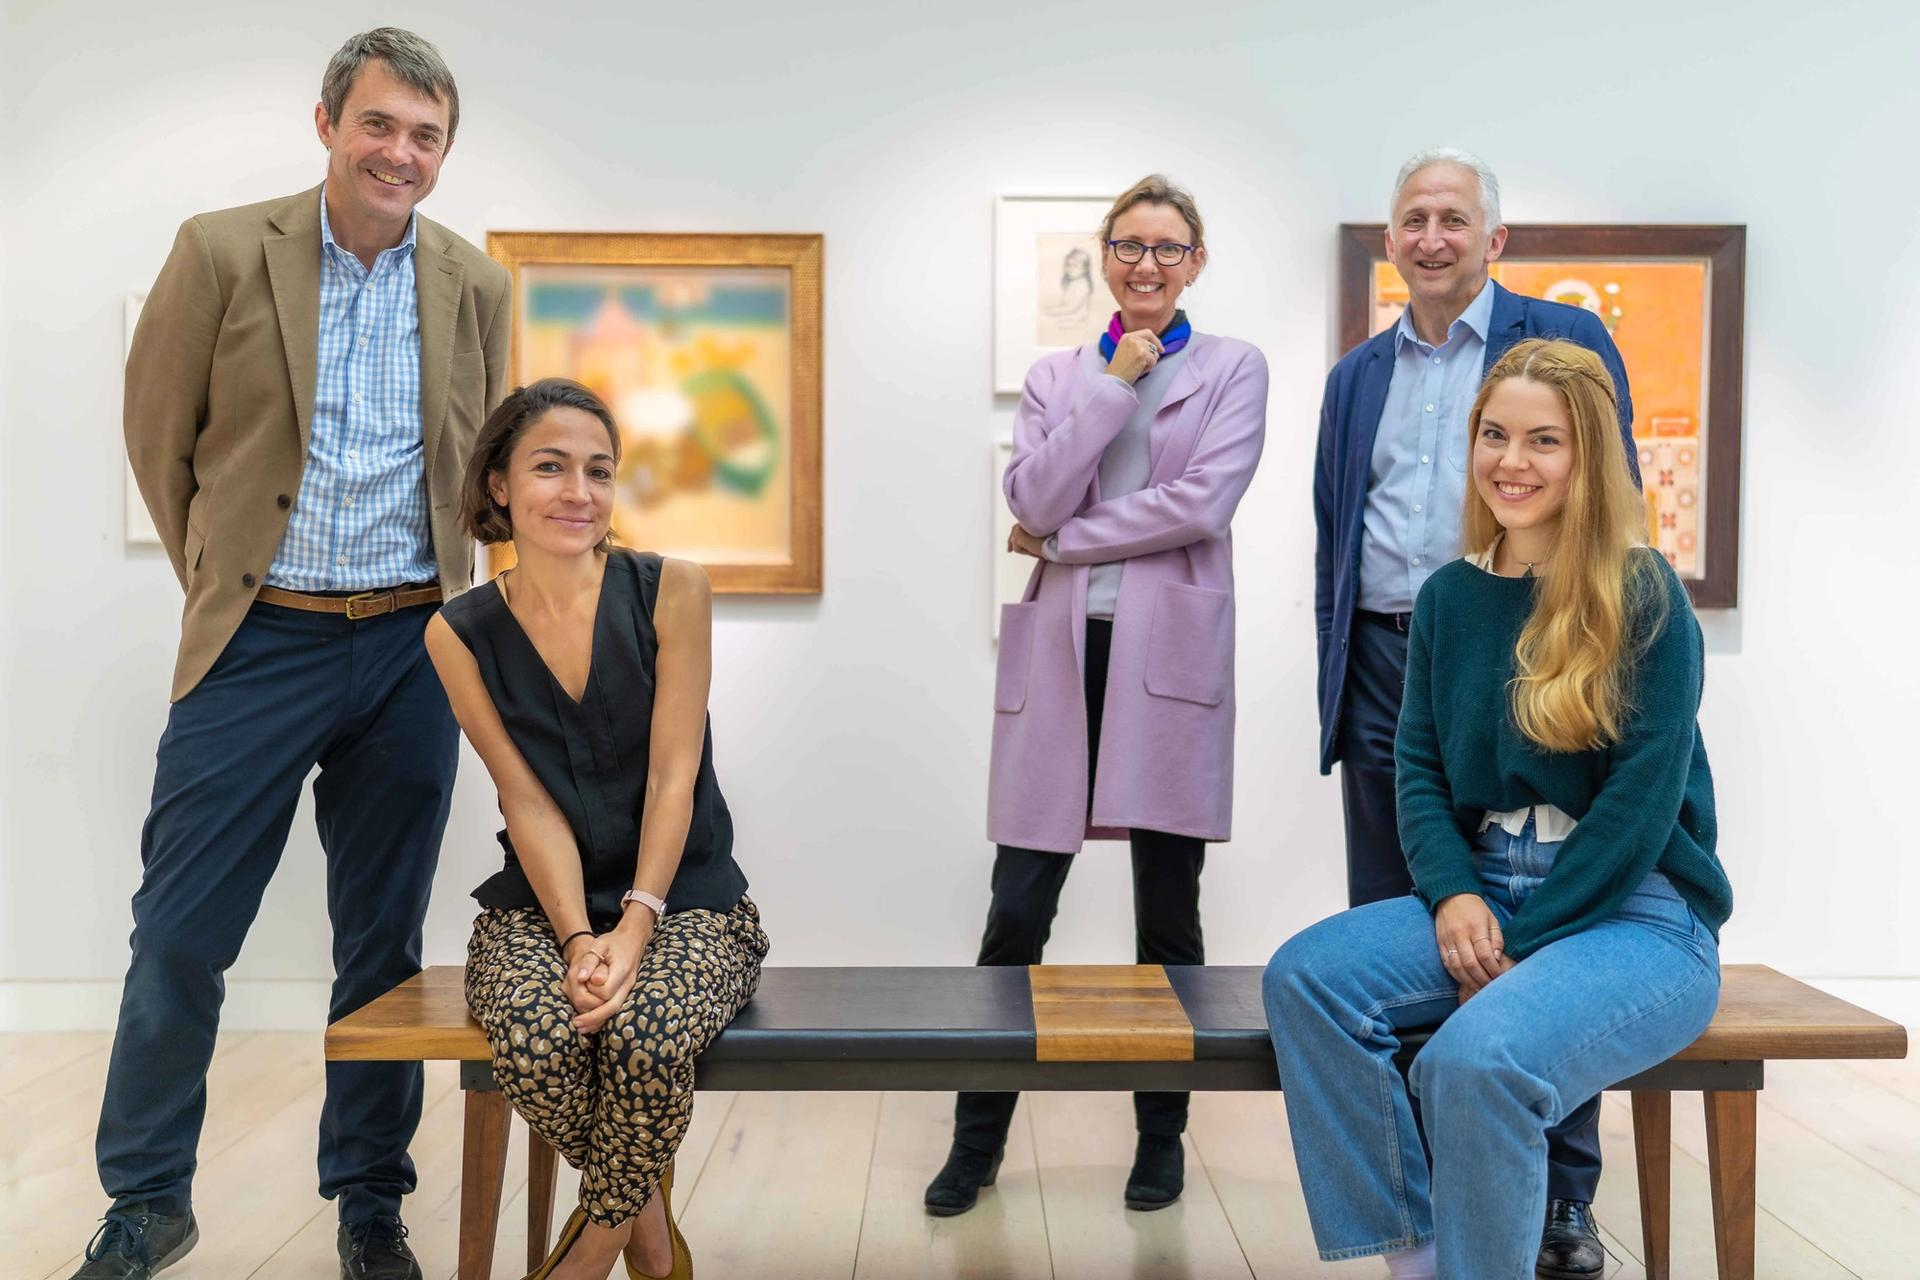 The Artistate team (minus Pierre Valentin), from left: John Martin, Jessica Carlisle, Catherine Hill, Keith Graham and Camille Beckmann Photo: Walter Finch